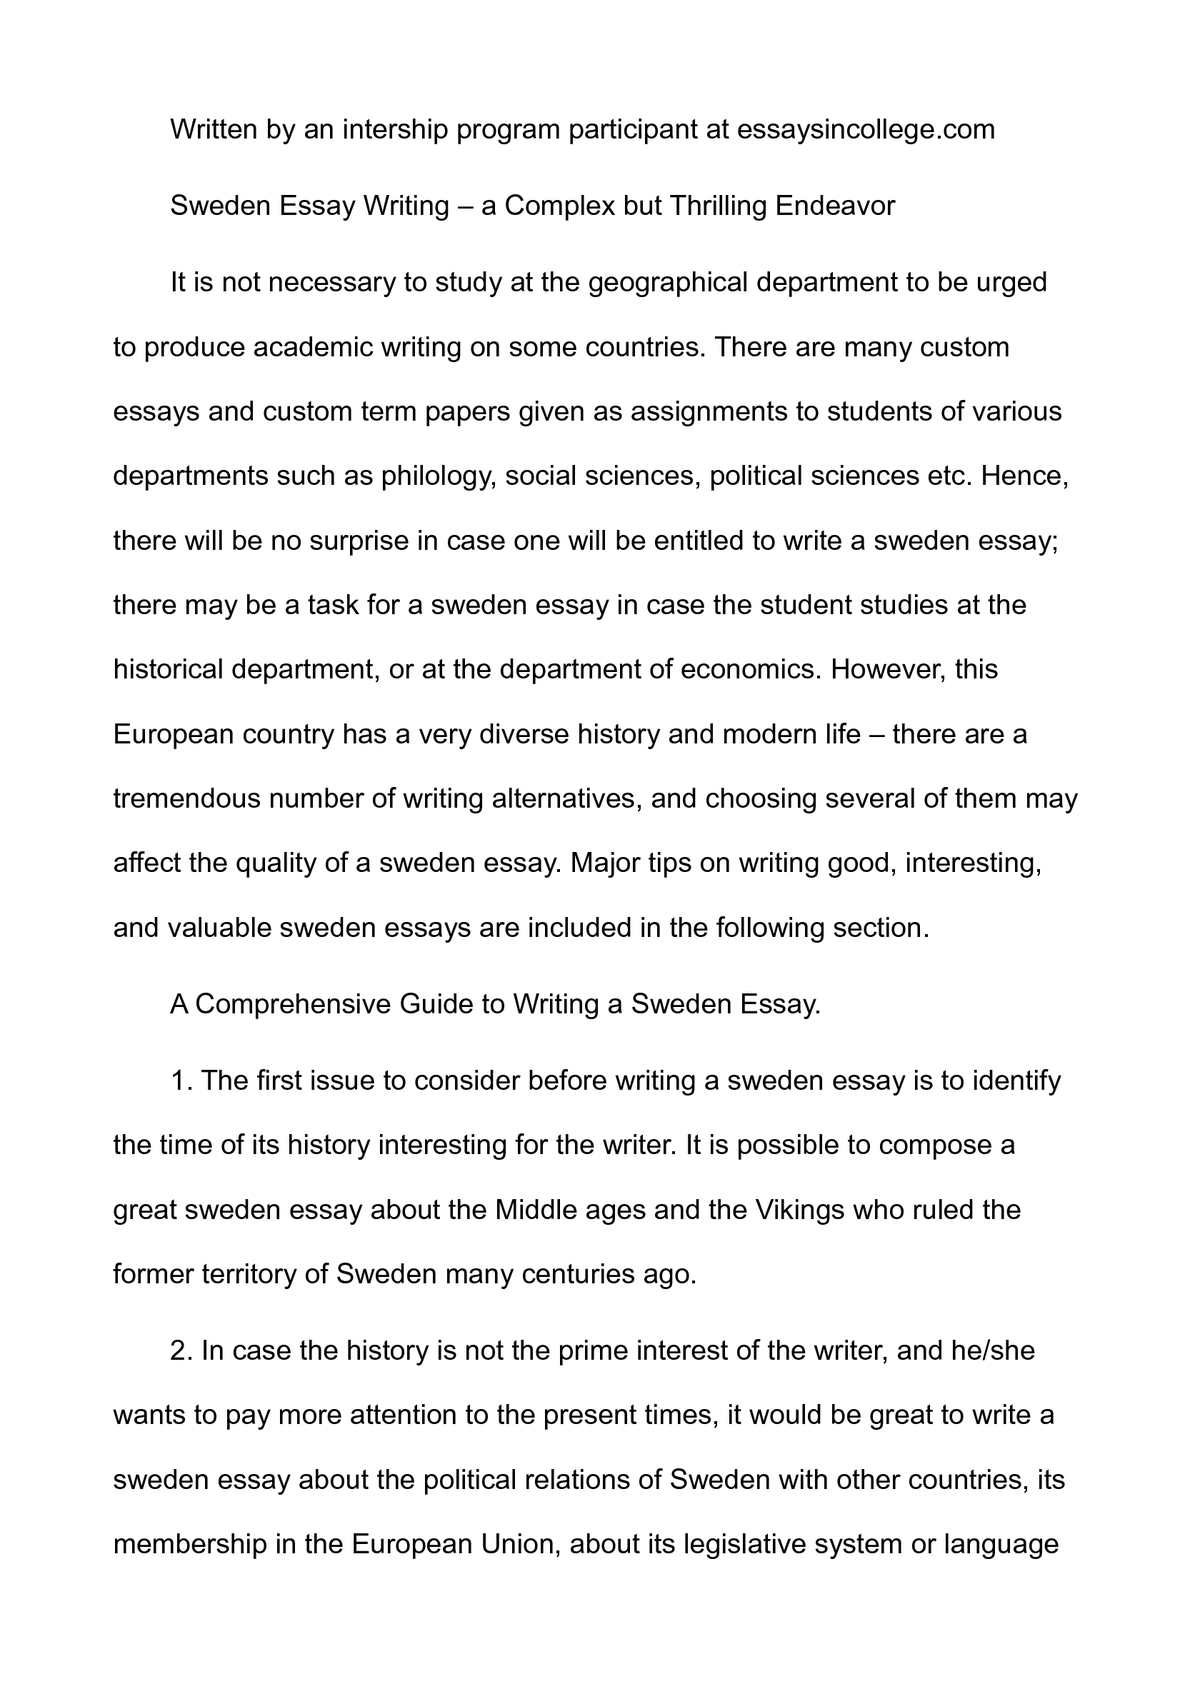 sweden essay Sweden custom essay writing sweden is known as the country of females truly, in sweden females can be found in government, as chief executive officers, business owners and social leaders.